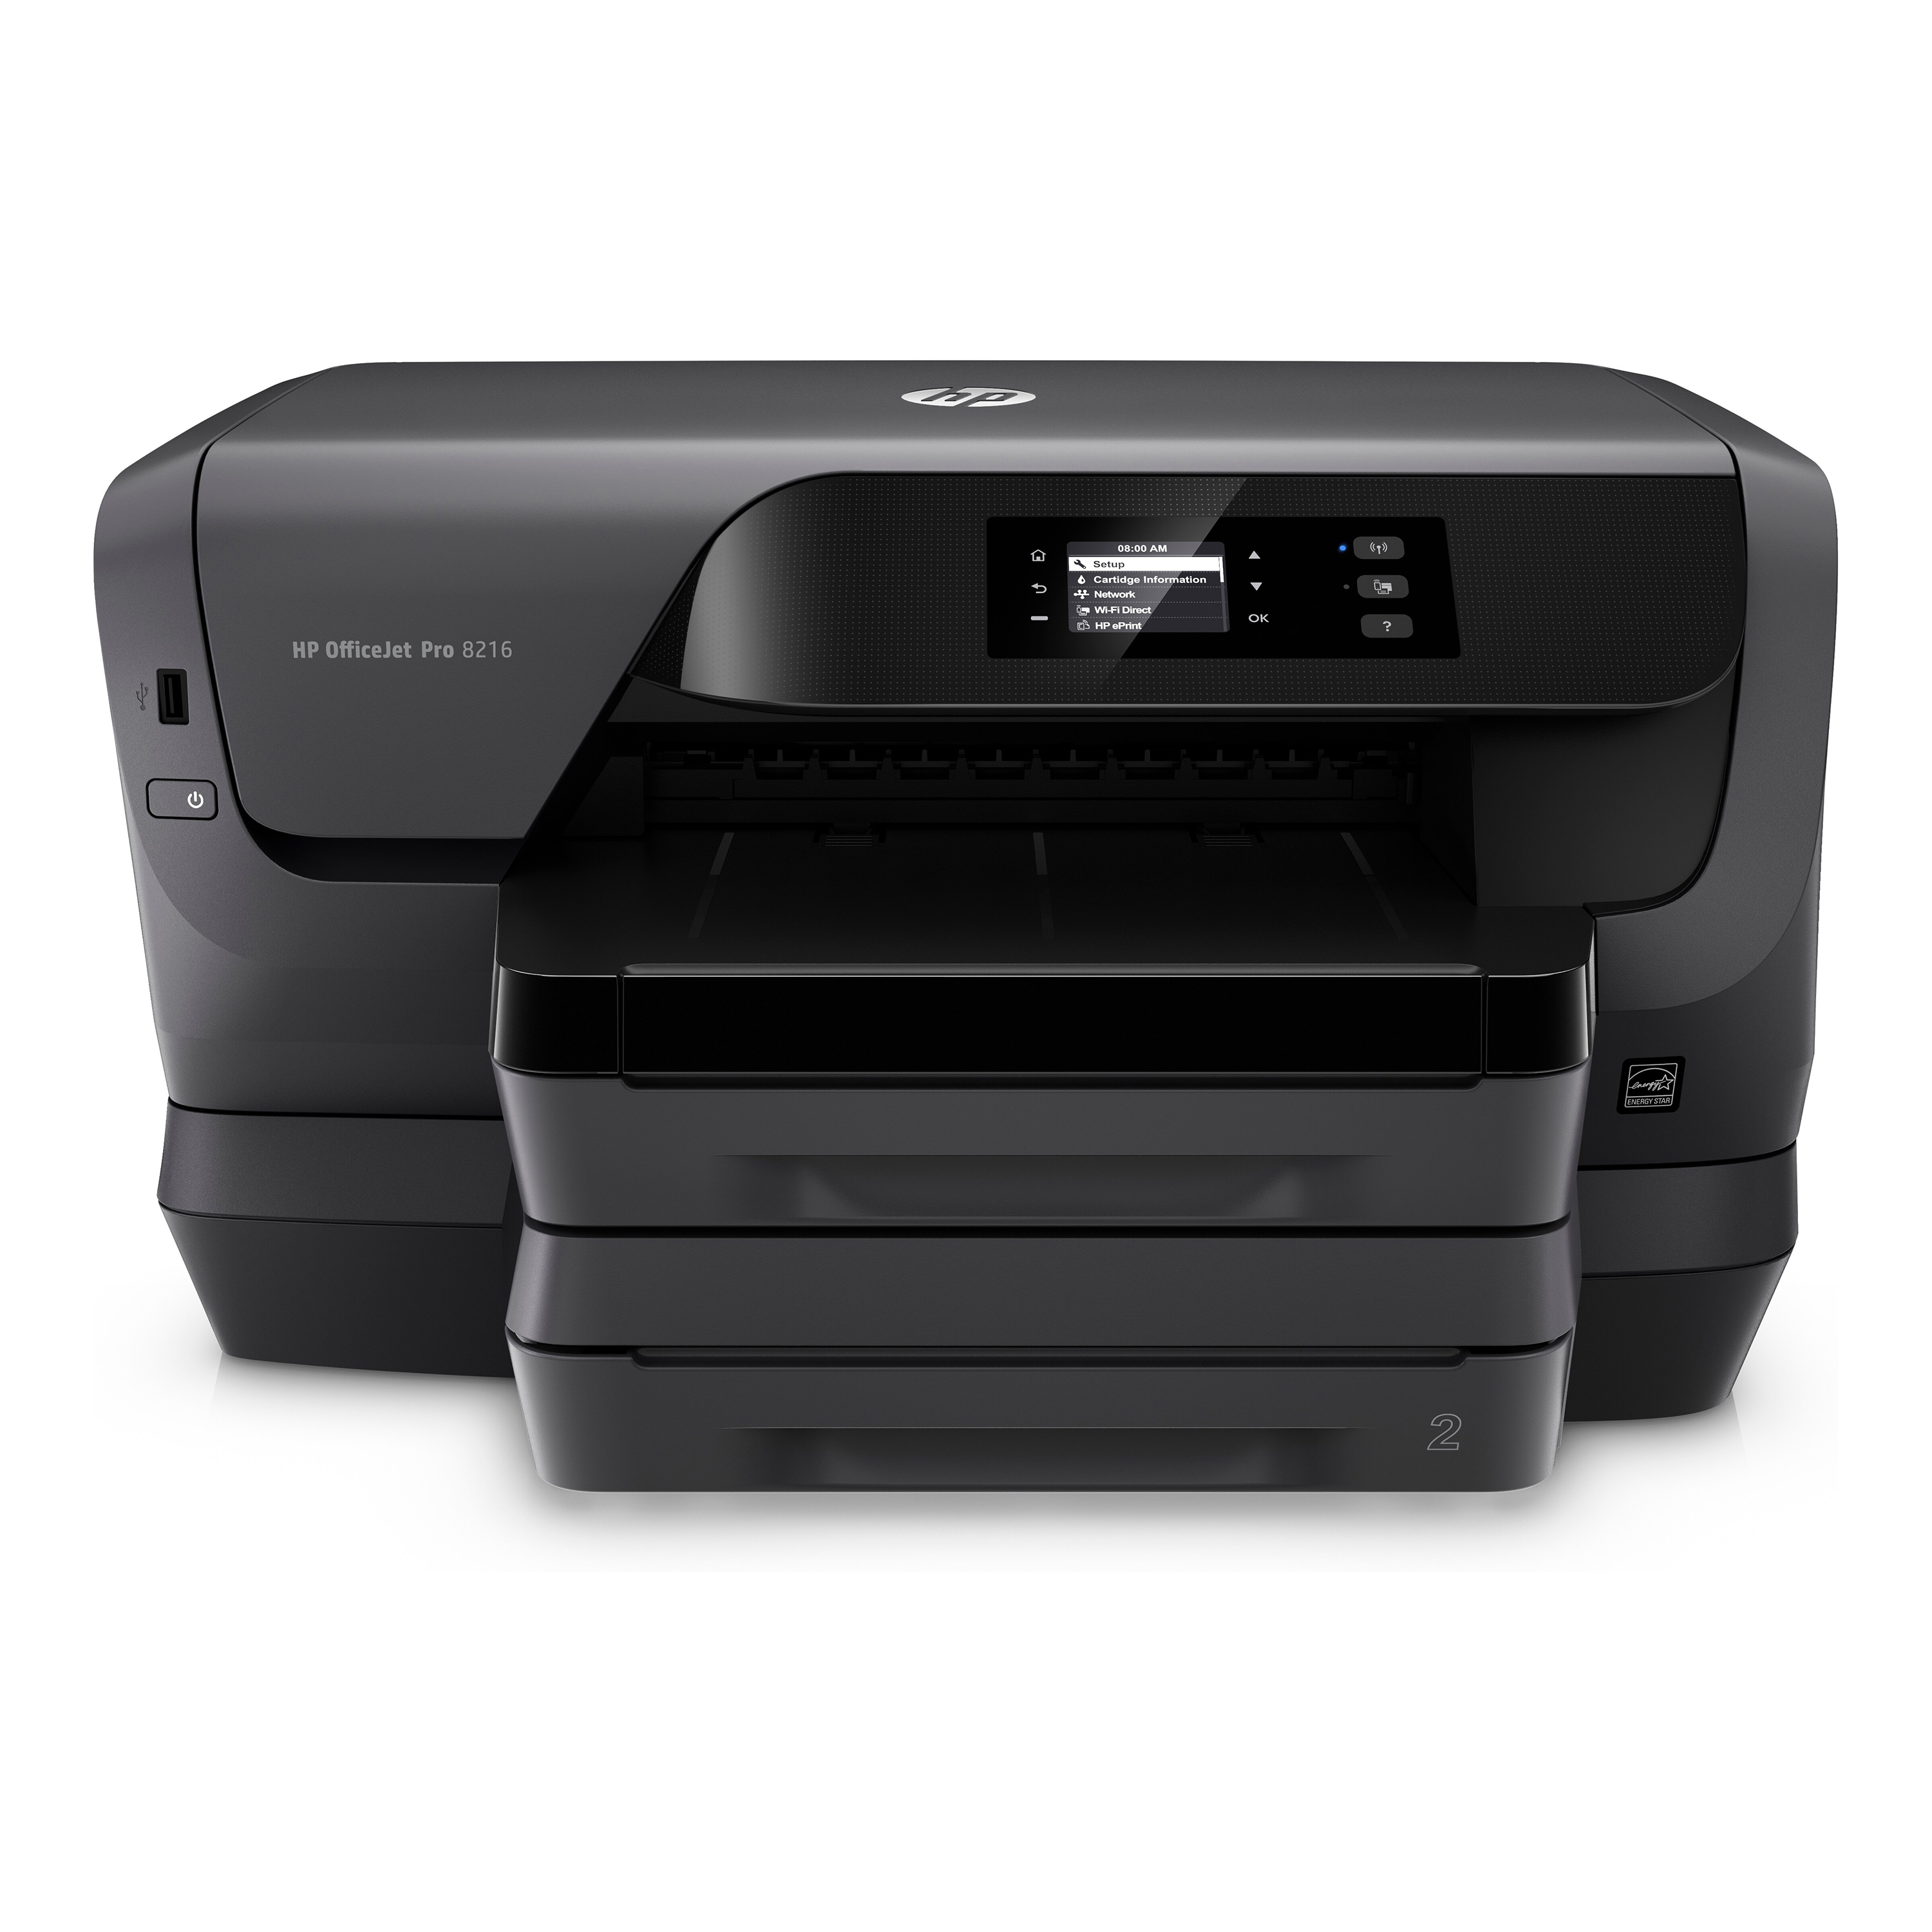 Inkjet printers HP OfficeJet Pro 8218 Inkjet A4 Printer Ref J3P68A